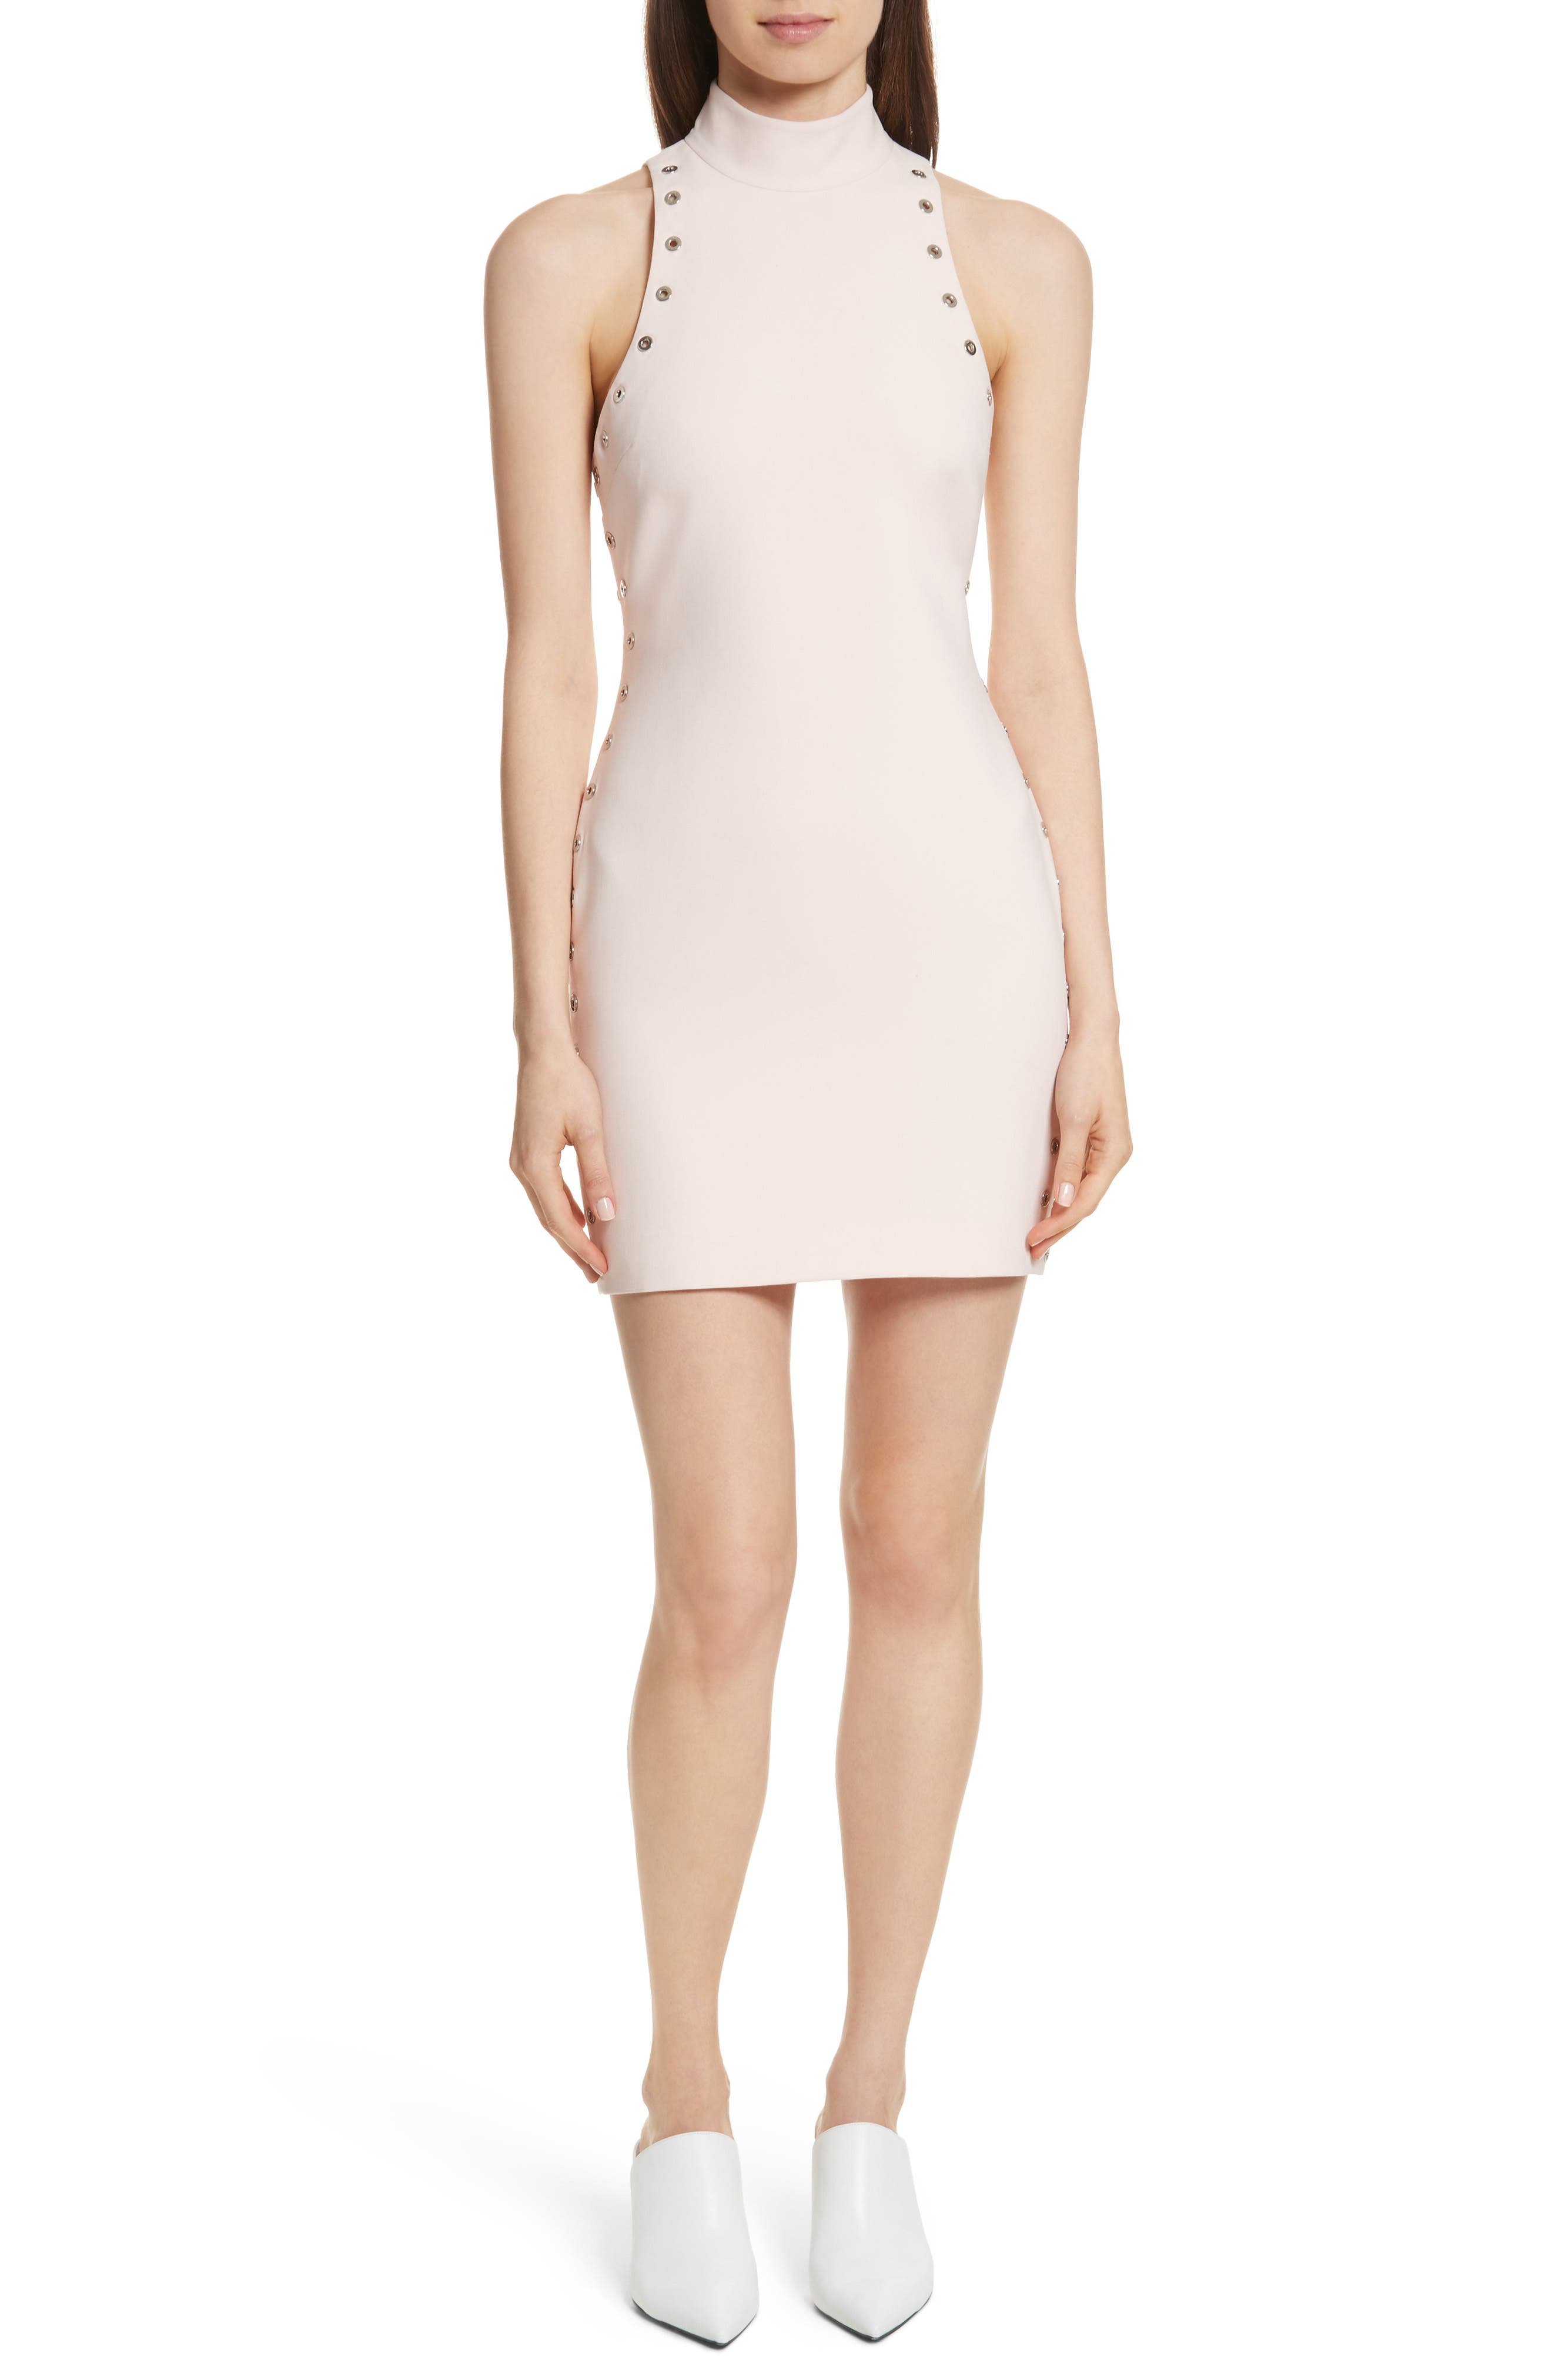 Ava Grommet Minidress,                         Main,                         color, Pearl Blush